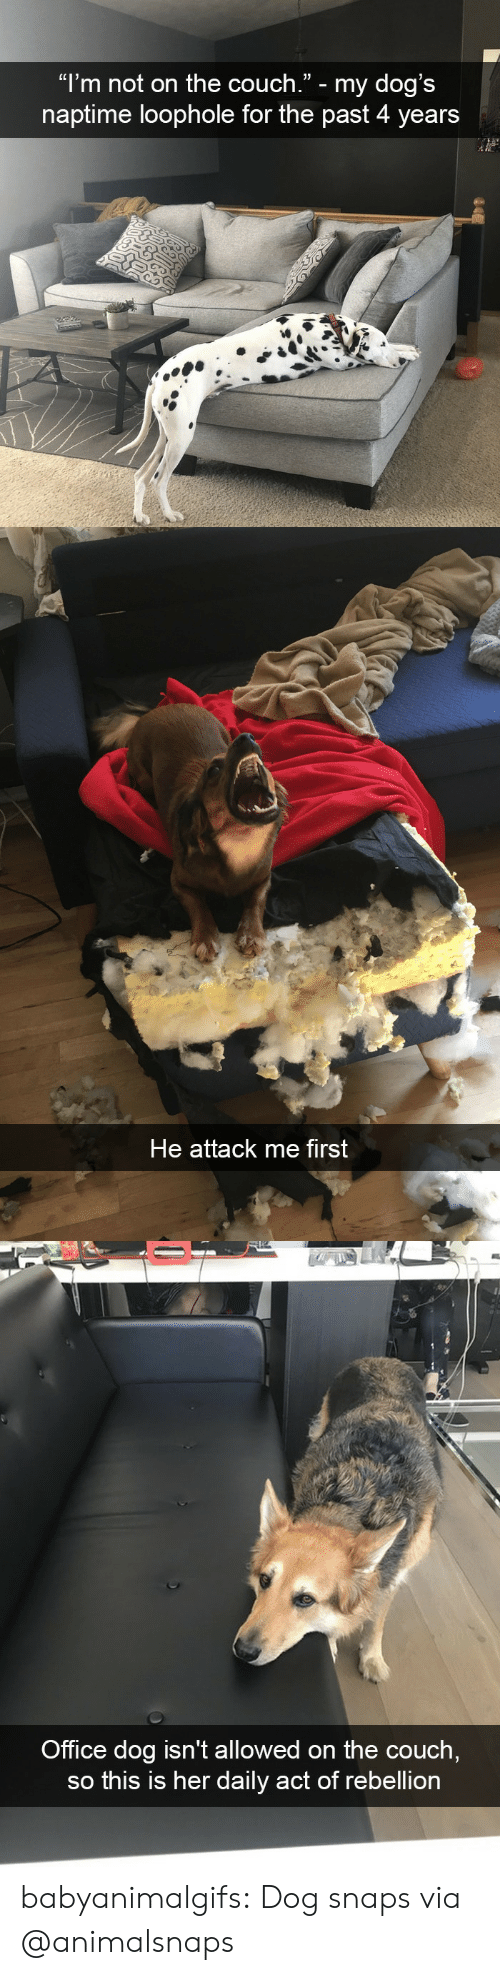 """Dogs, Tumblr, and Blog: """"l'm not on the couch."""" - my dog's  naptime loophole for the past 4 years   He attack me first   Office dog isn't allowed on the couch  so this is her daily act of rebellion babyanimalgifs: Dog snaps via @animalsnaps"""